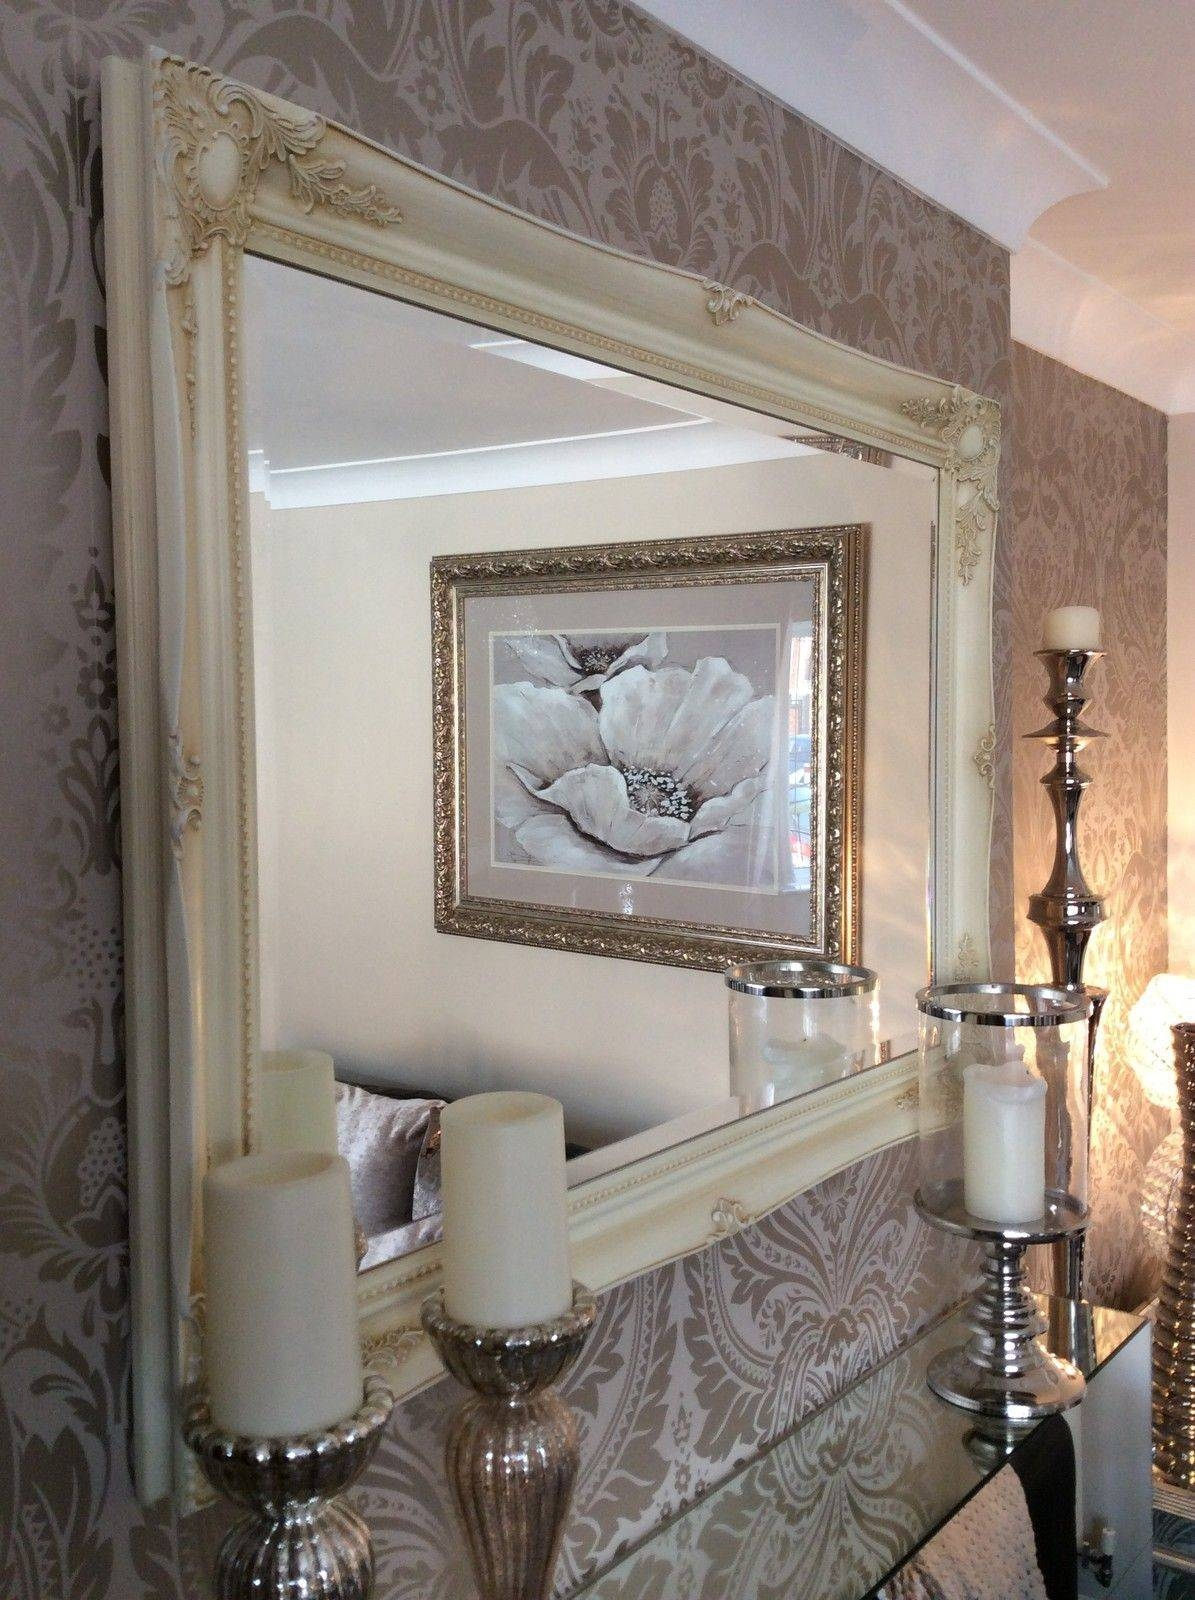 Extra Large Framed Mirror | Home Design Ideas with regard to Very Large Ornate Mirrors (Image 10 of 25)